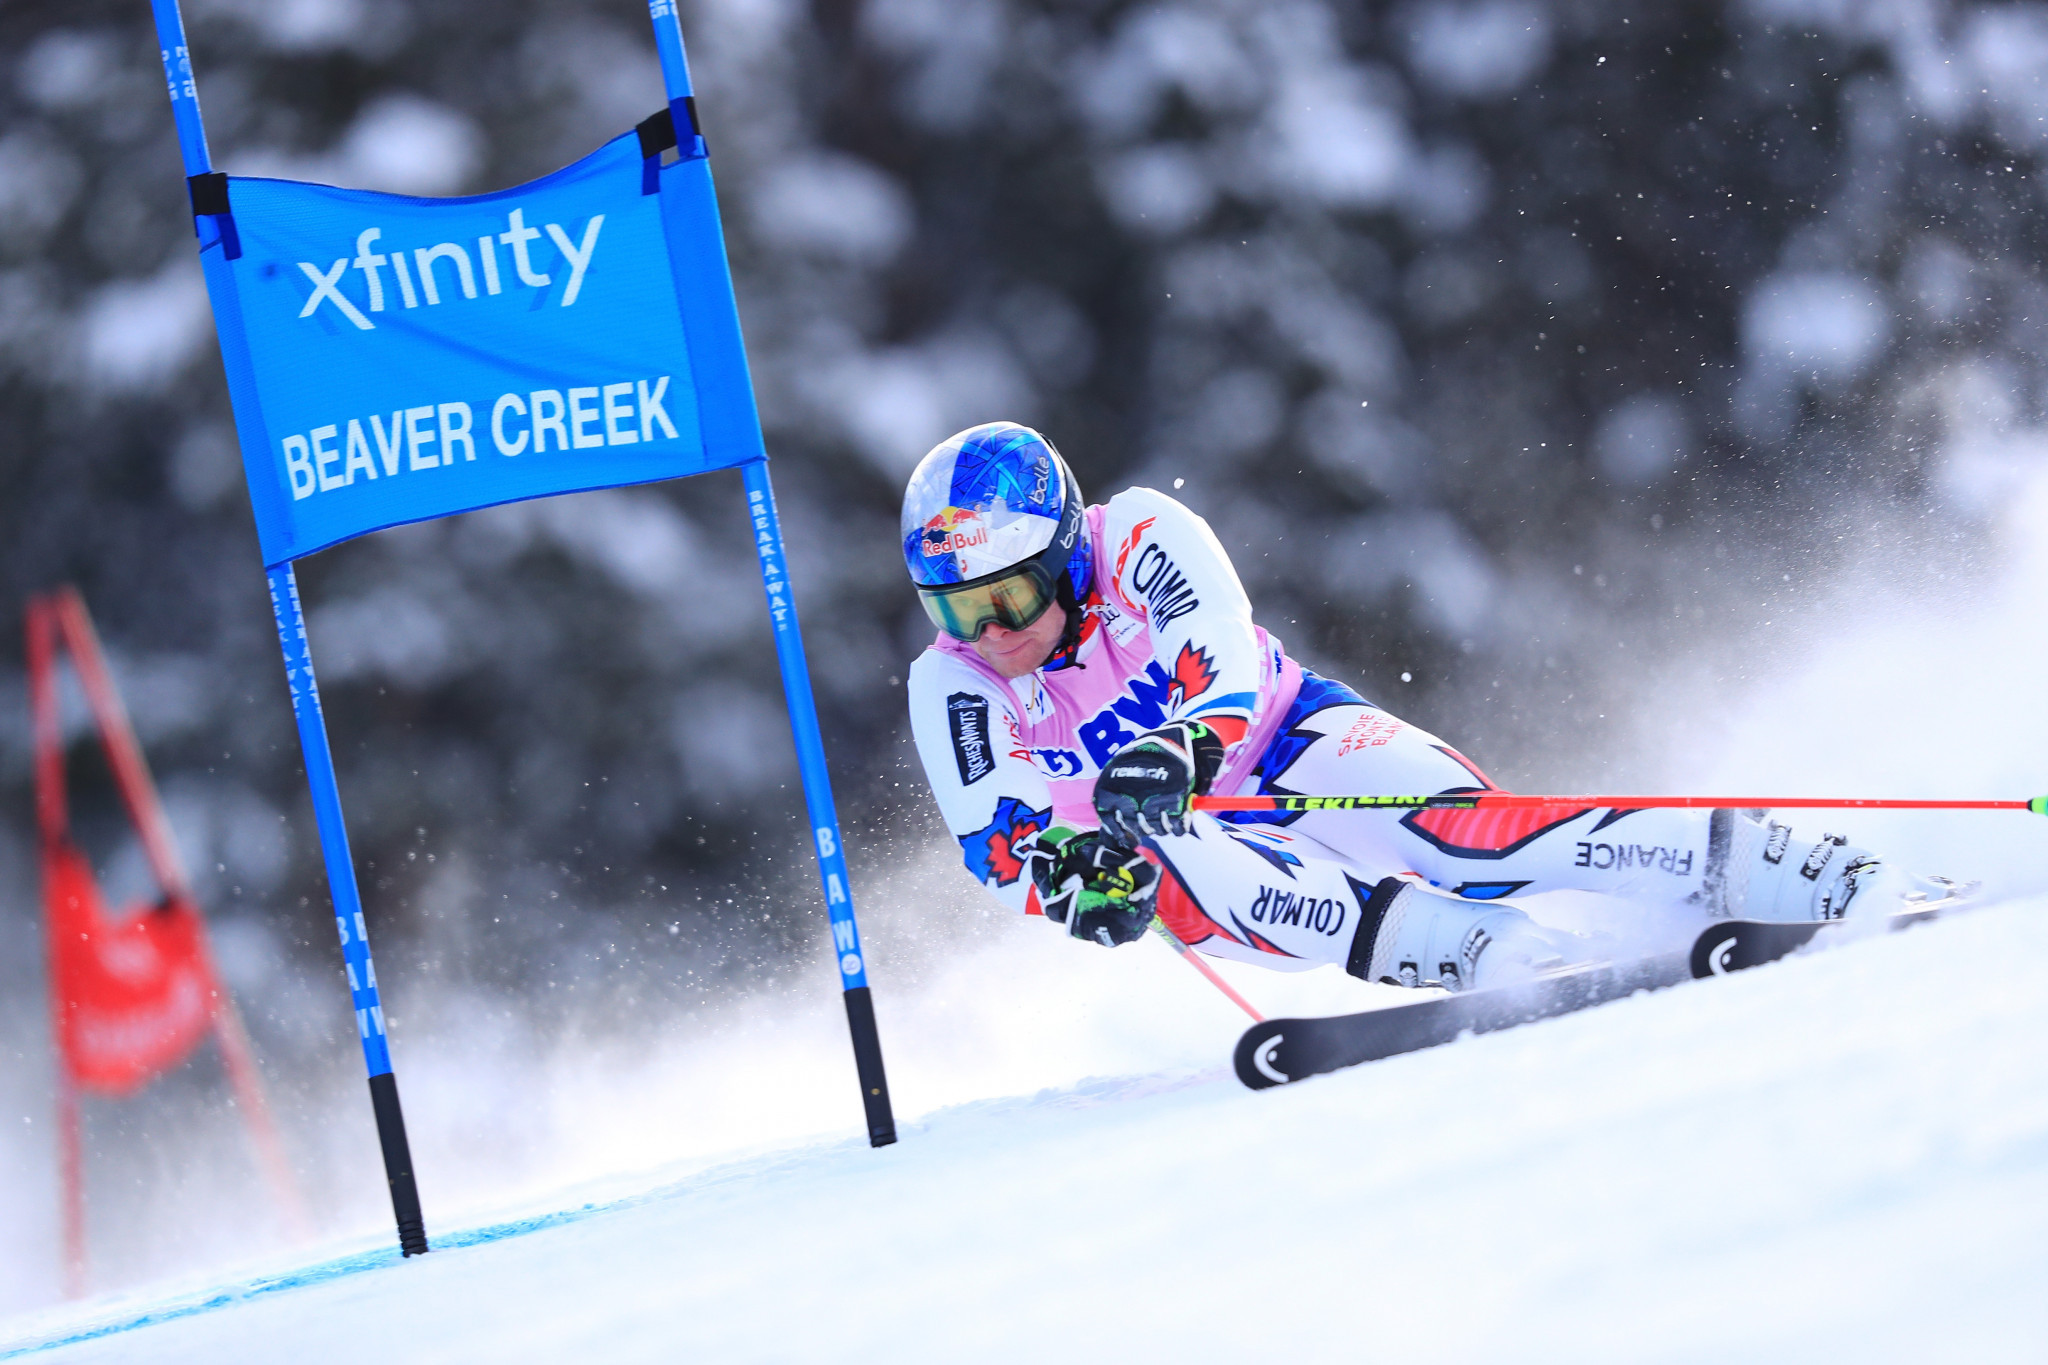 Alexis Pinturault will defend his FIS Alpine World Cup giant slalom title on the home slopes of Val d'Isere ©Getty Images